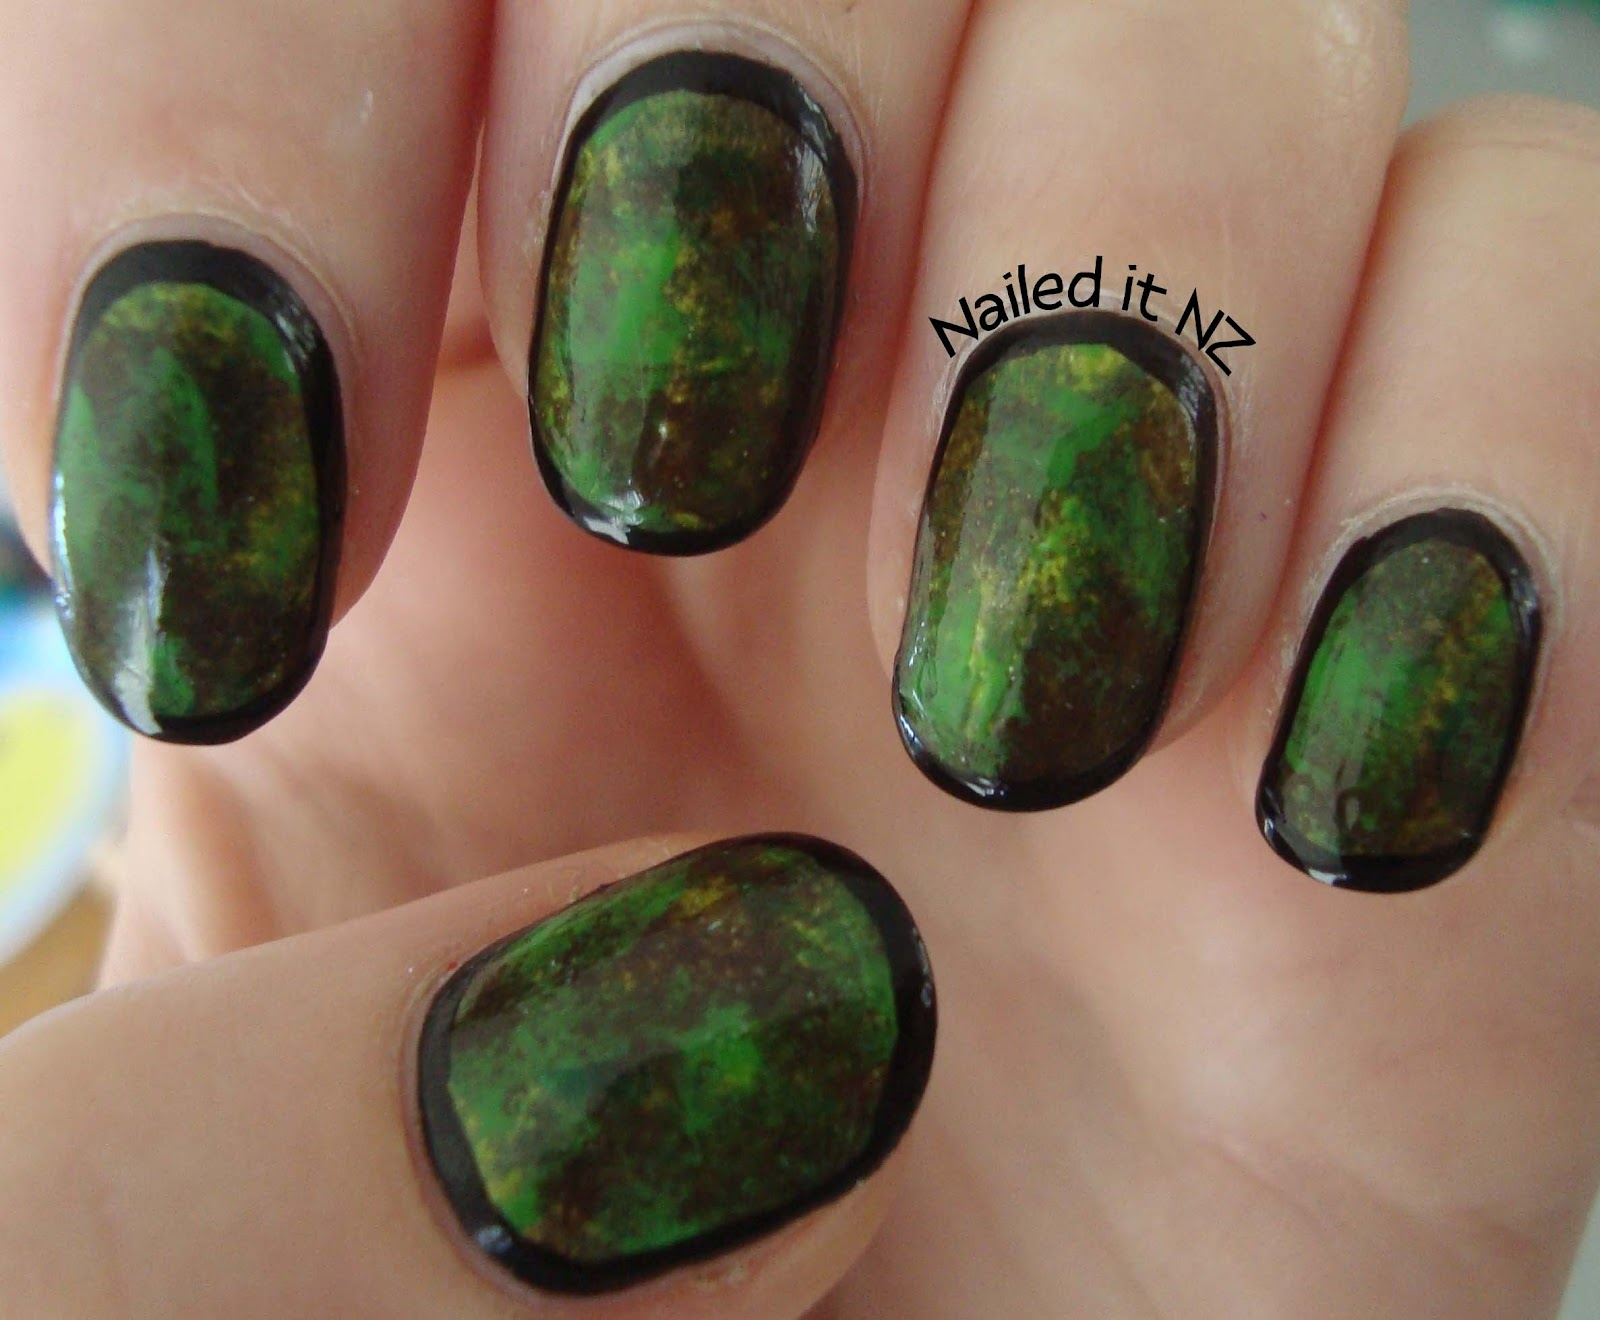 Army/camouflage nails - sponged on